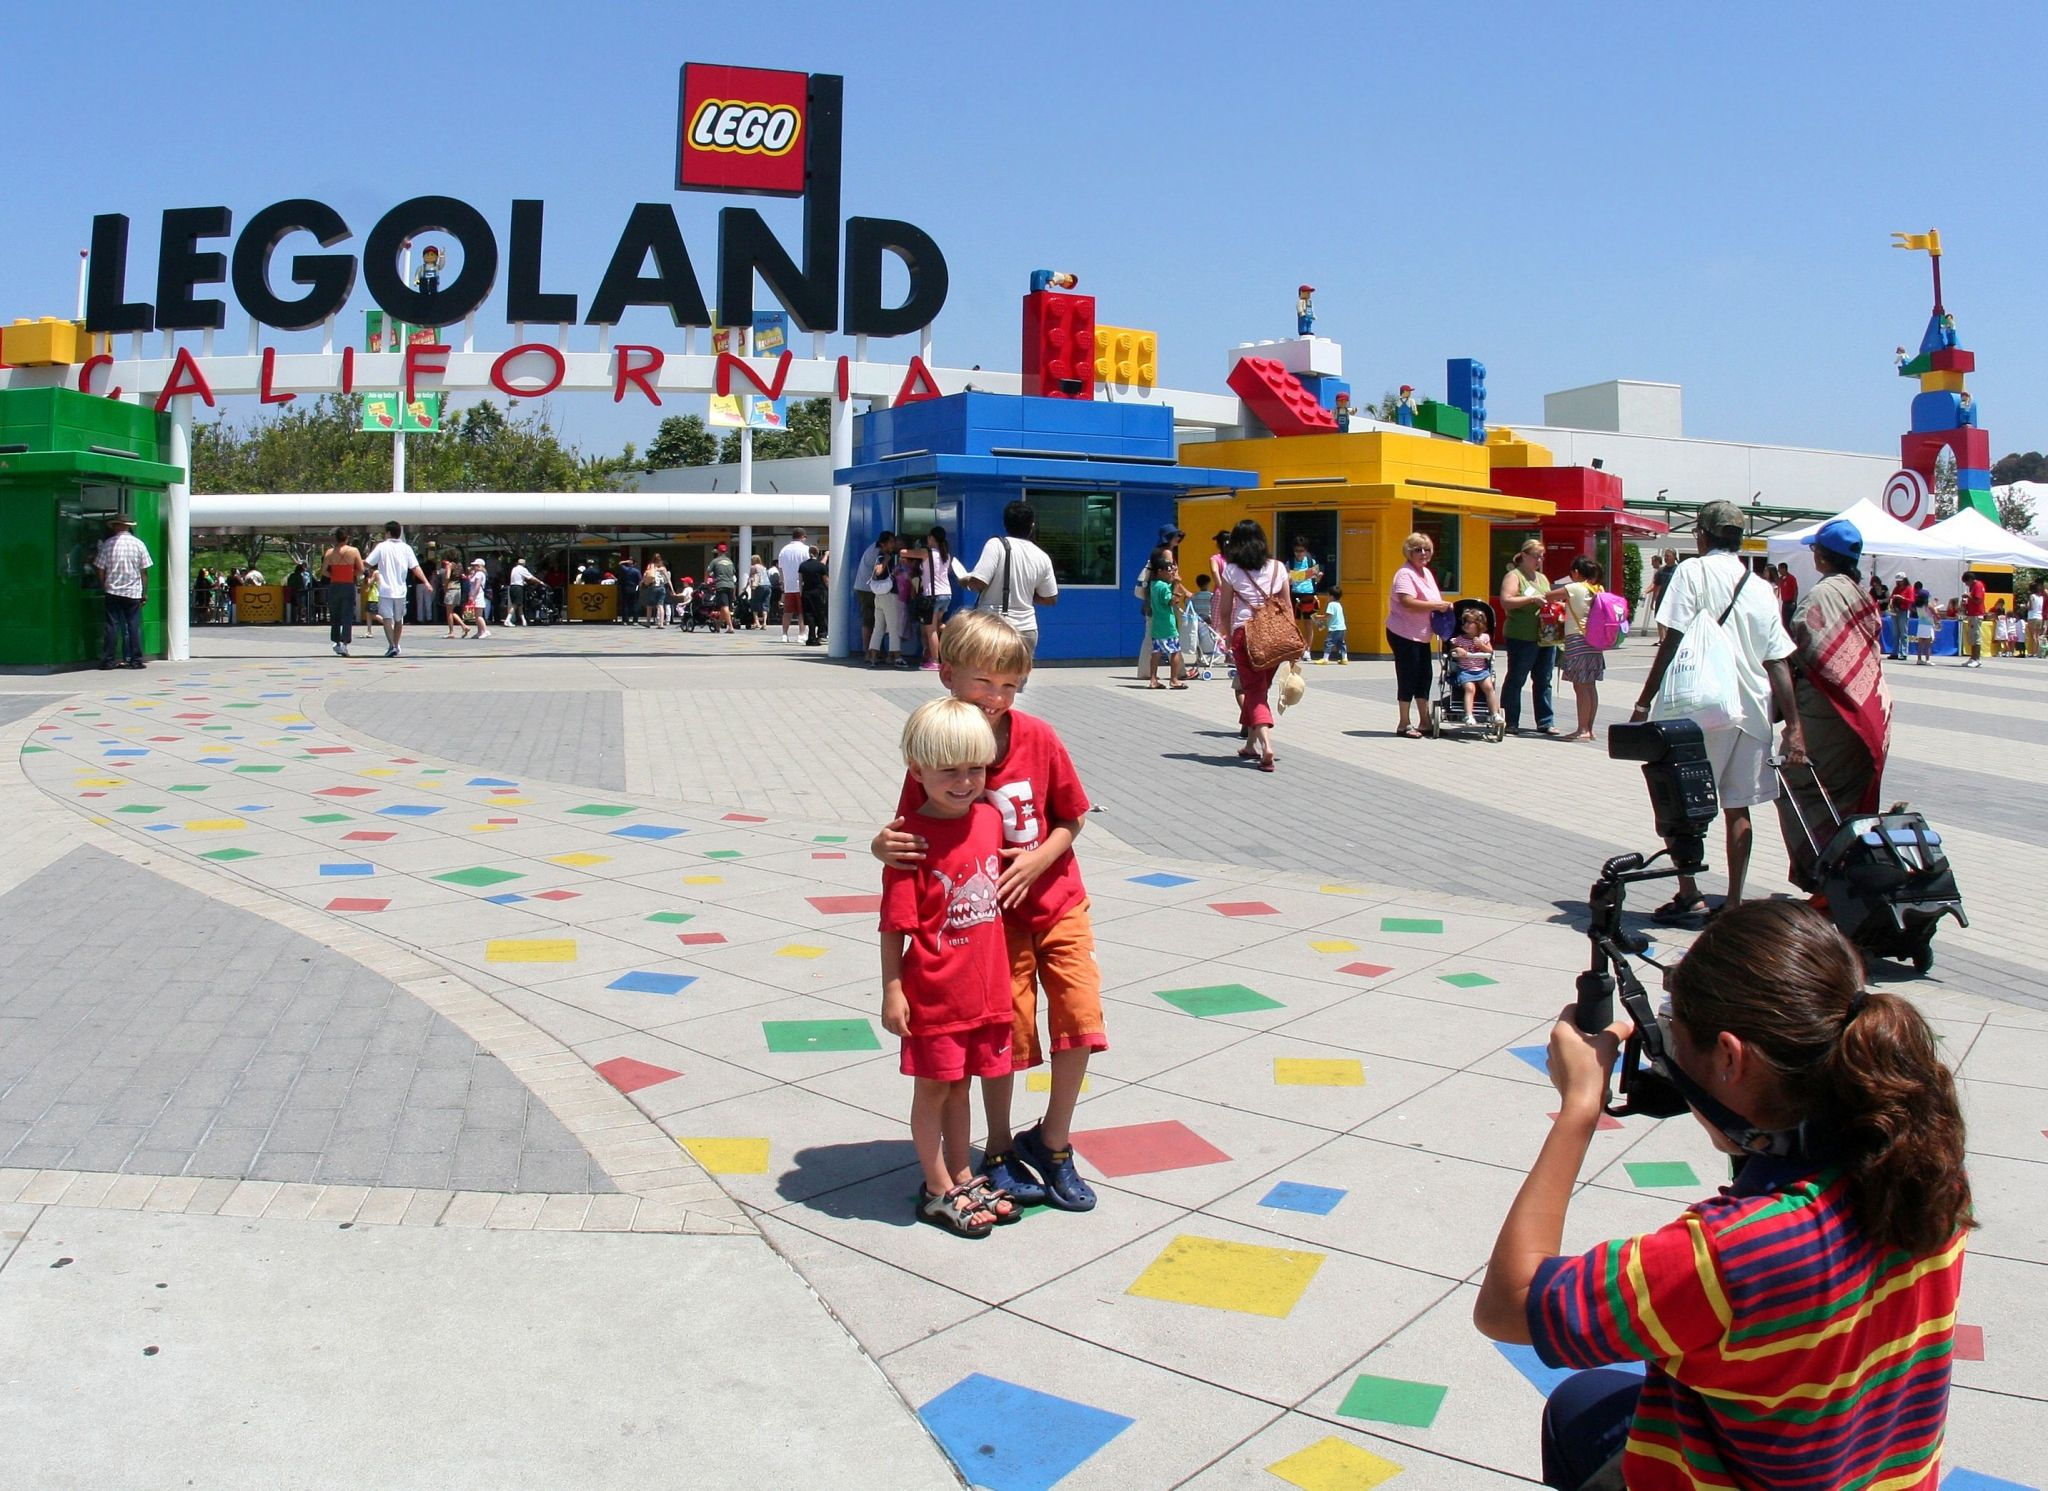 Legoland Hotel - Sheraton Mission Valley